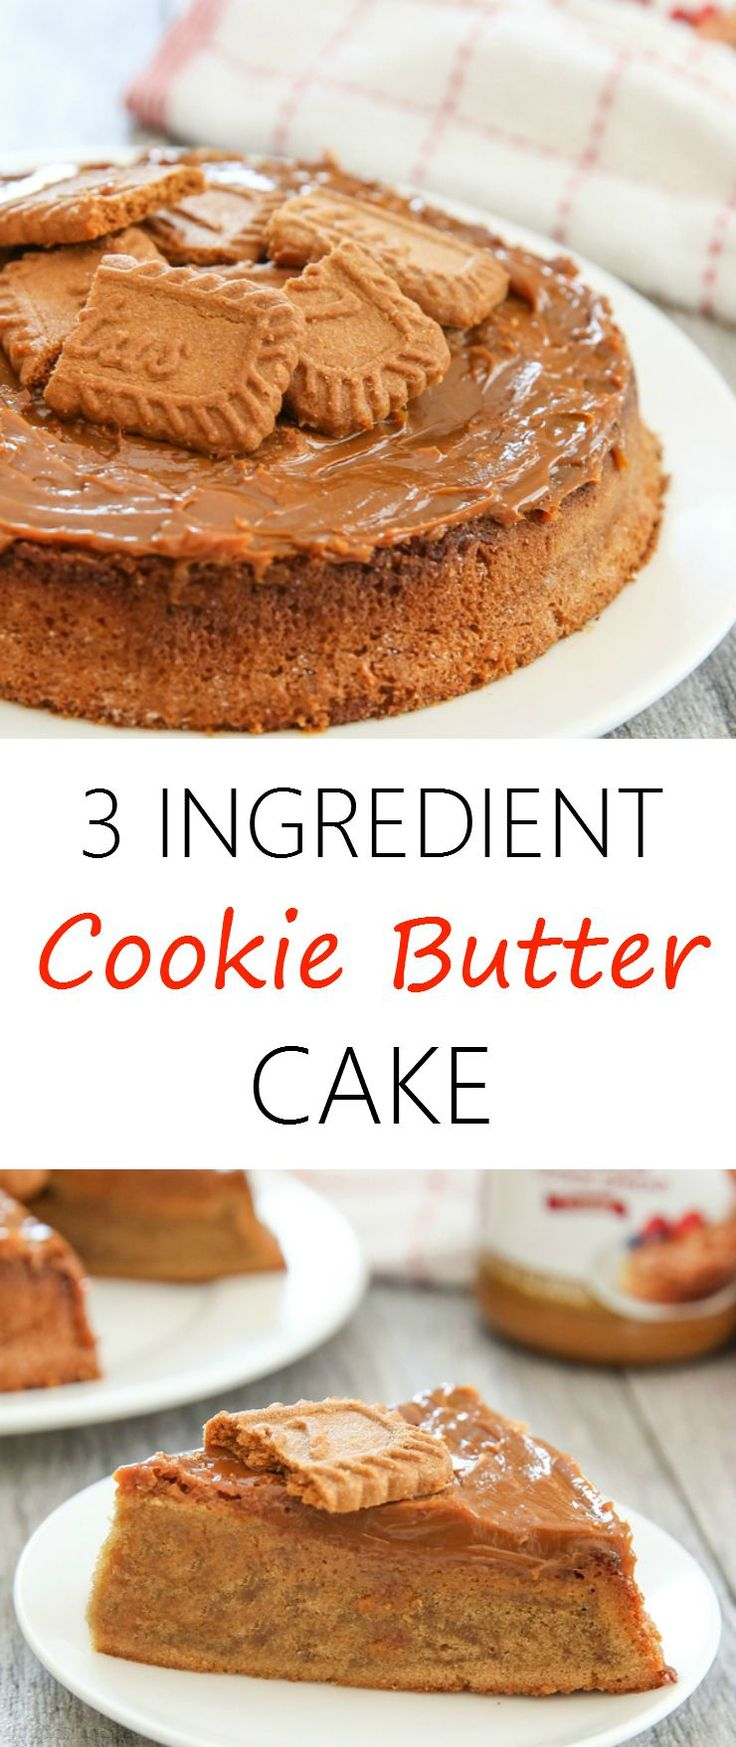 3 Ingredient Cookie Butter Cake | Kirbie's Cravings | A San Diego food blog